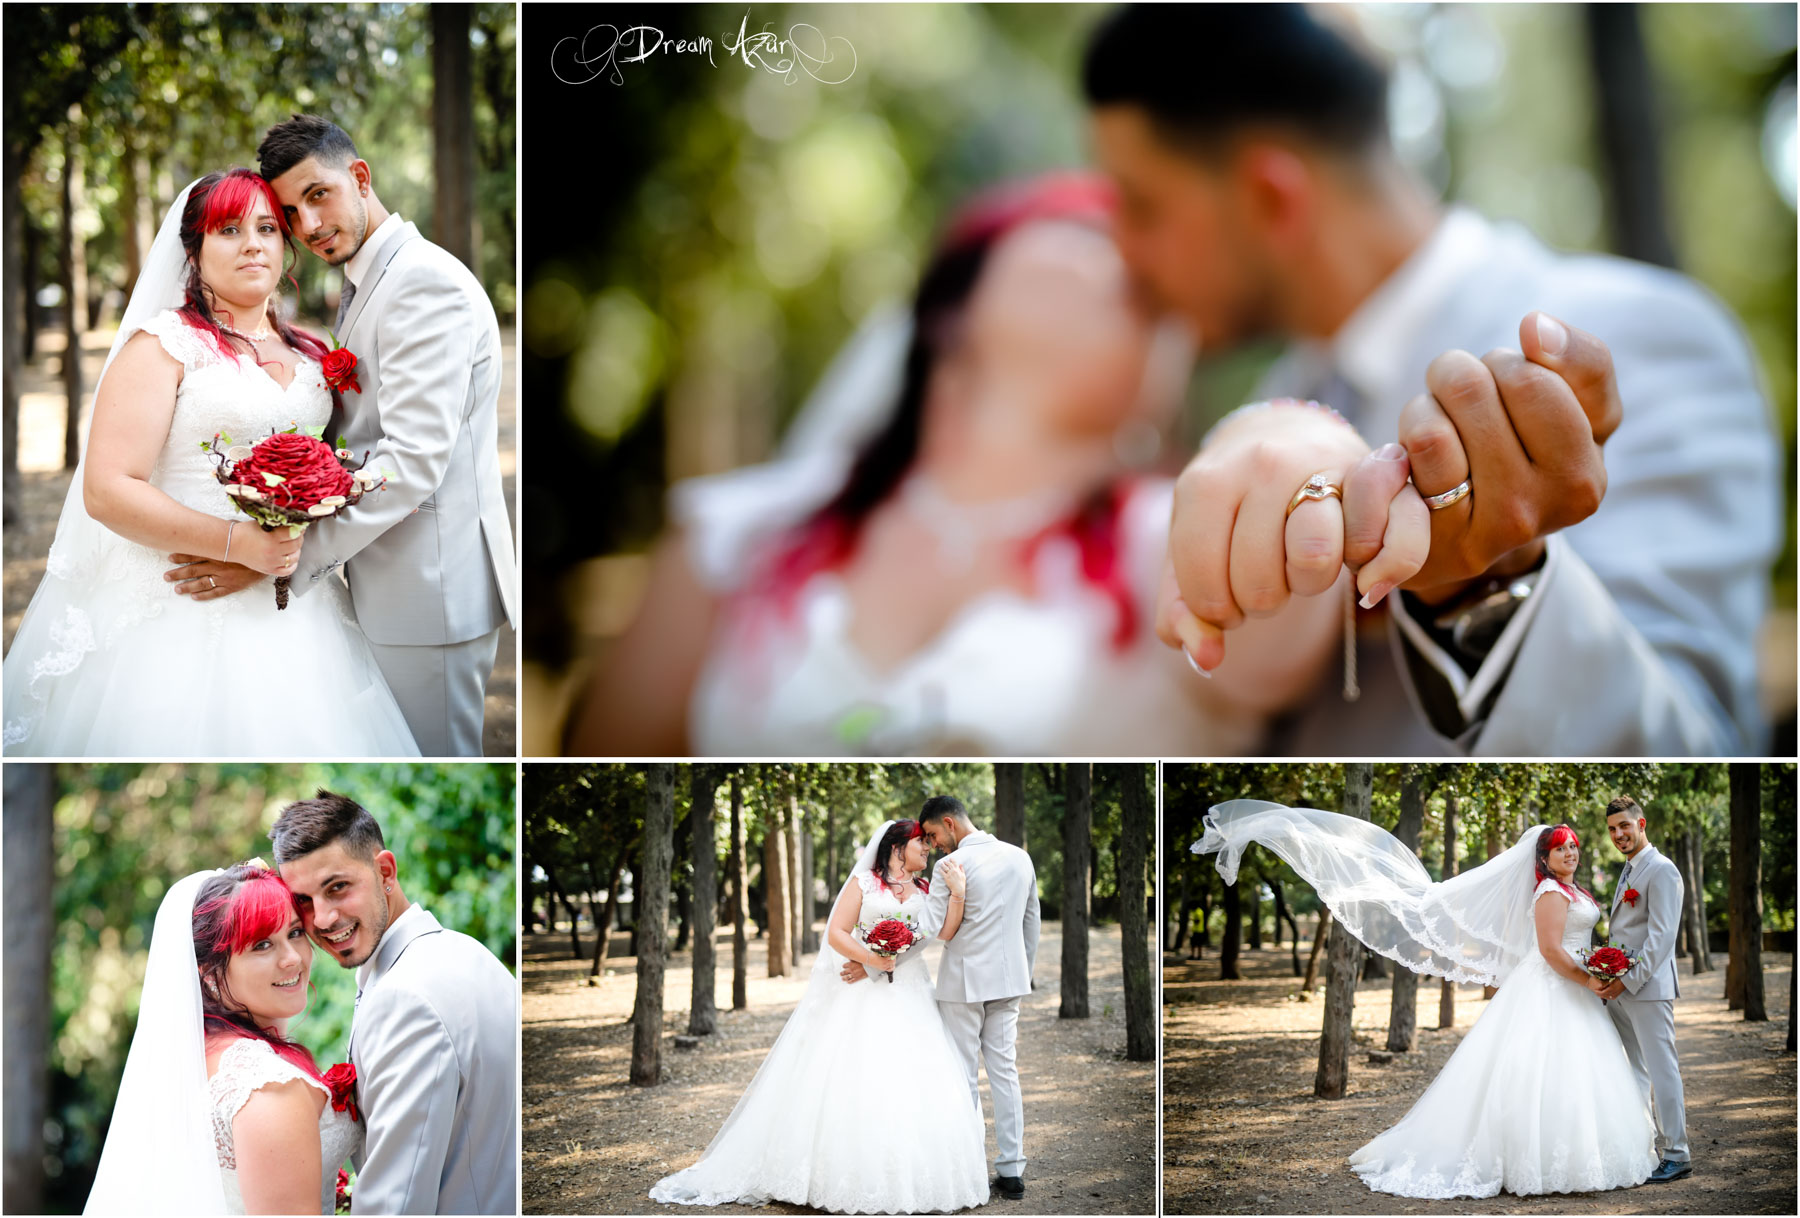 190824COMPO-Mariage-Cindy-et-Anthony-57